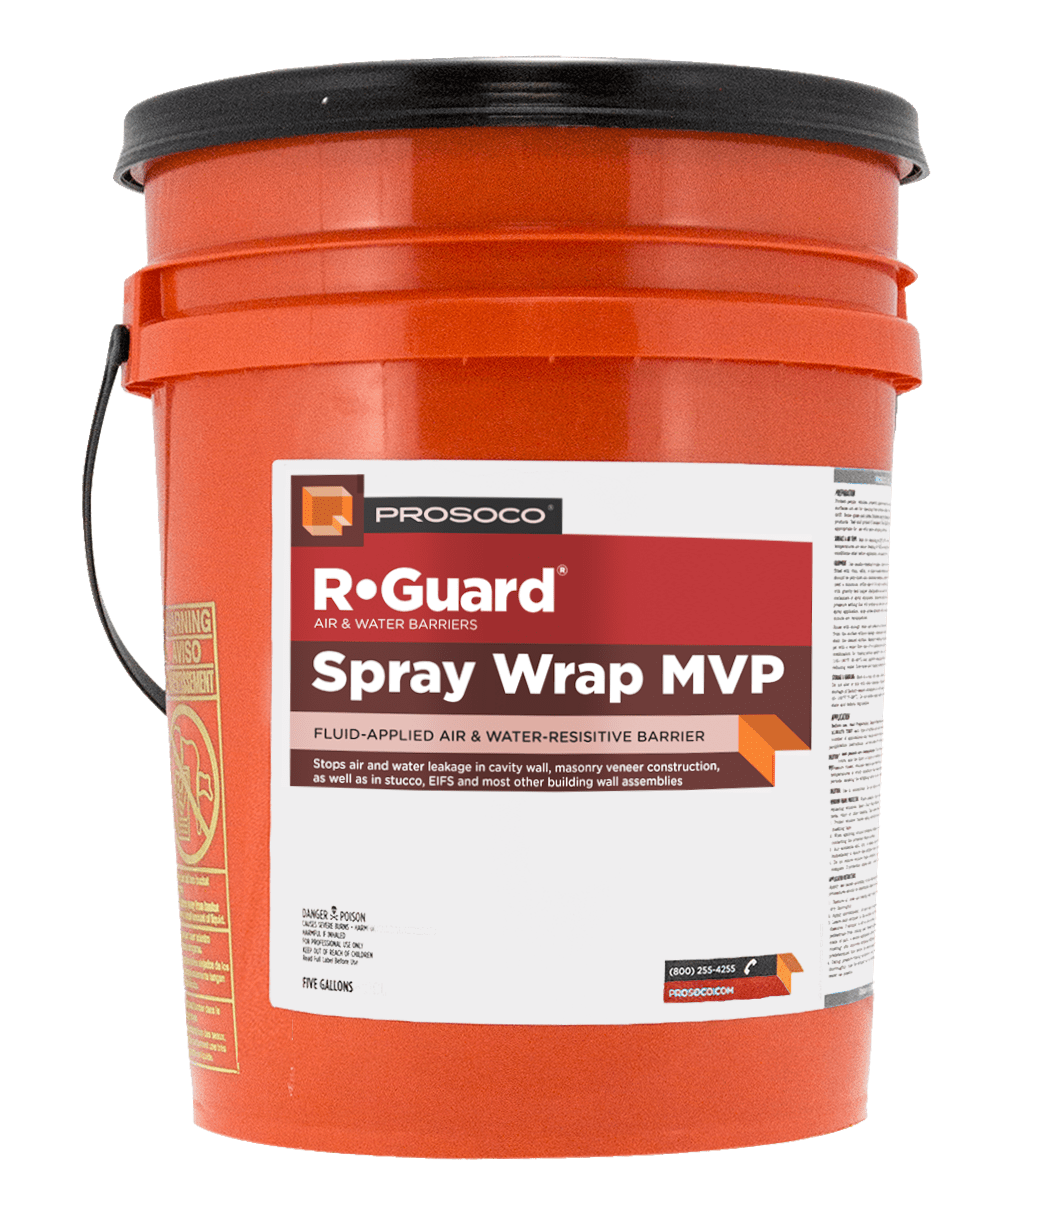 spray-wrap-mvp-5-Gal